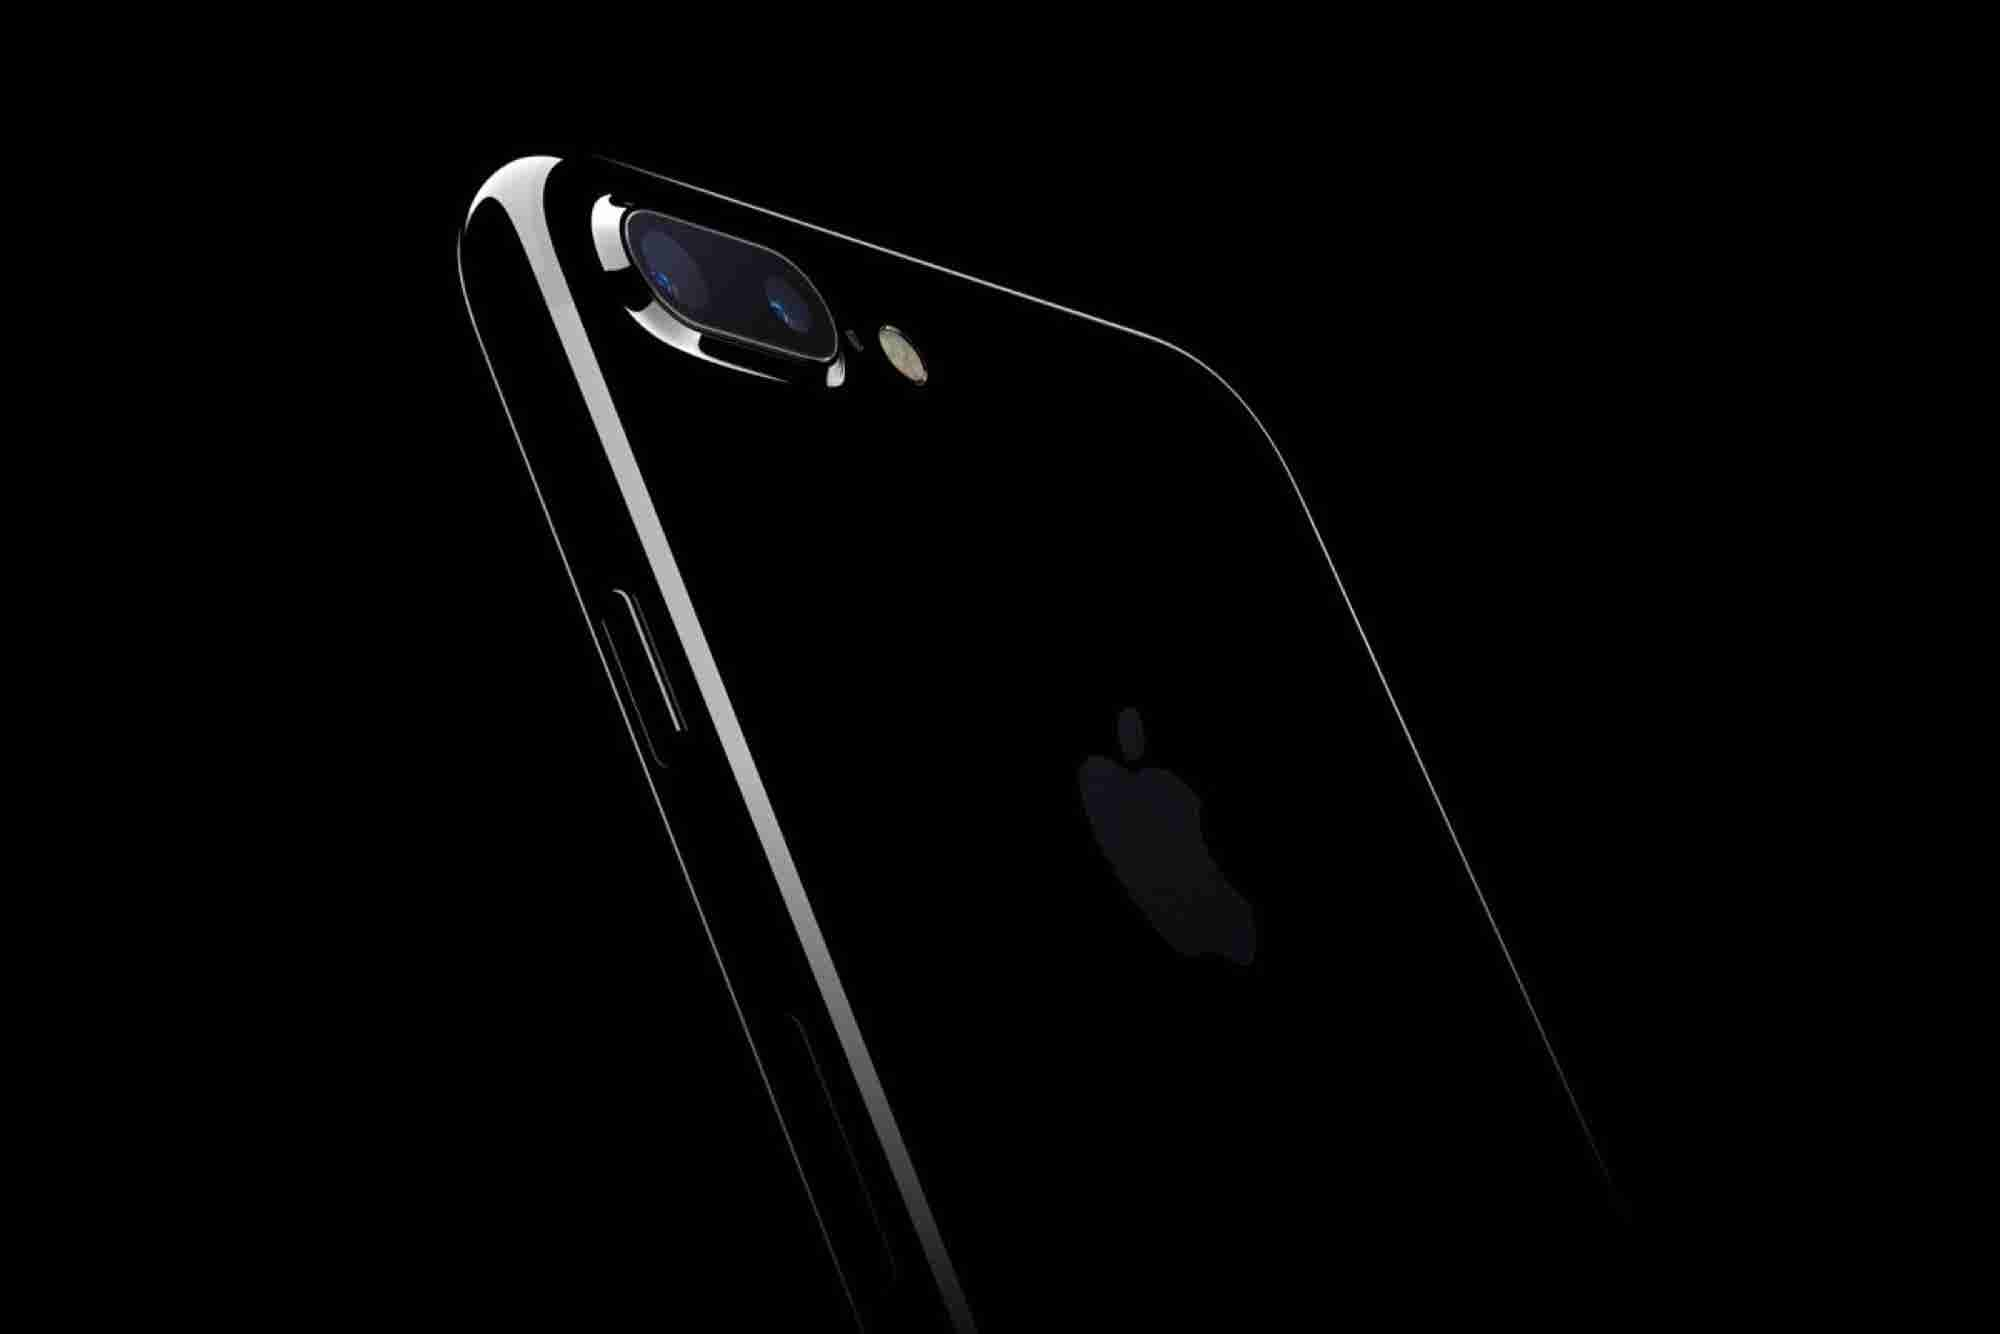 Initial Quantities of iPhone 7 Plus Are Sold Out, Apple Says